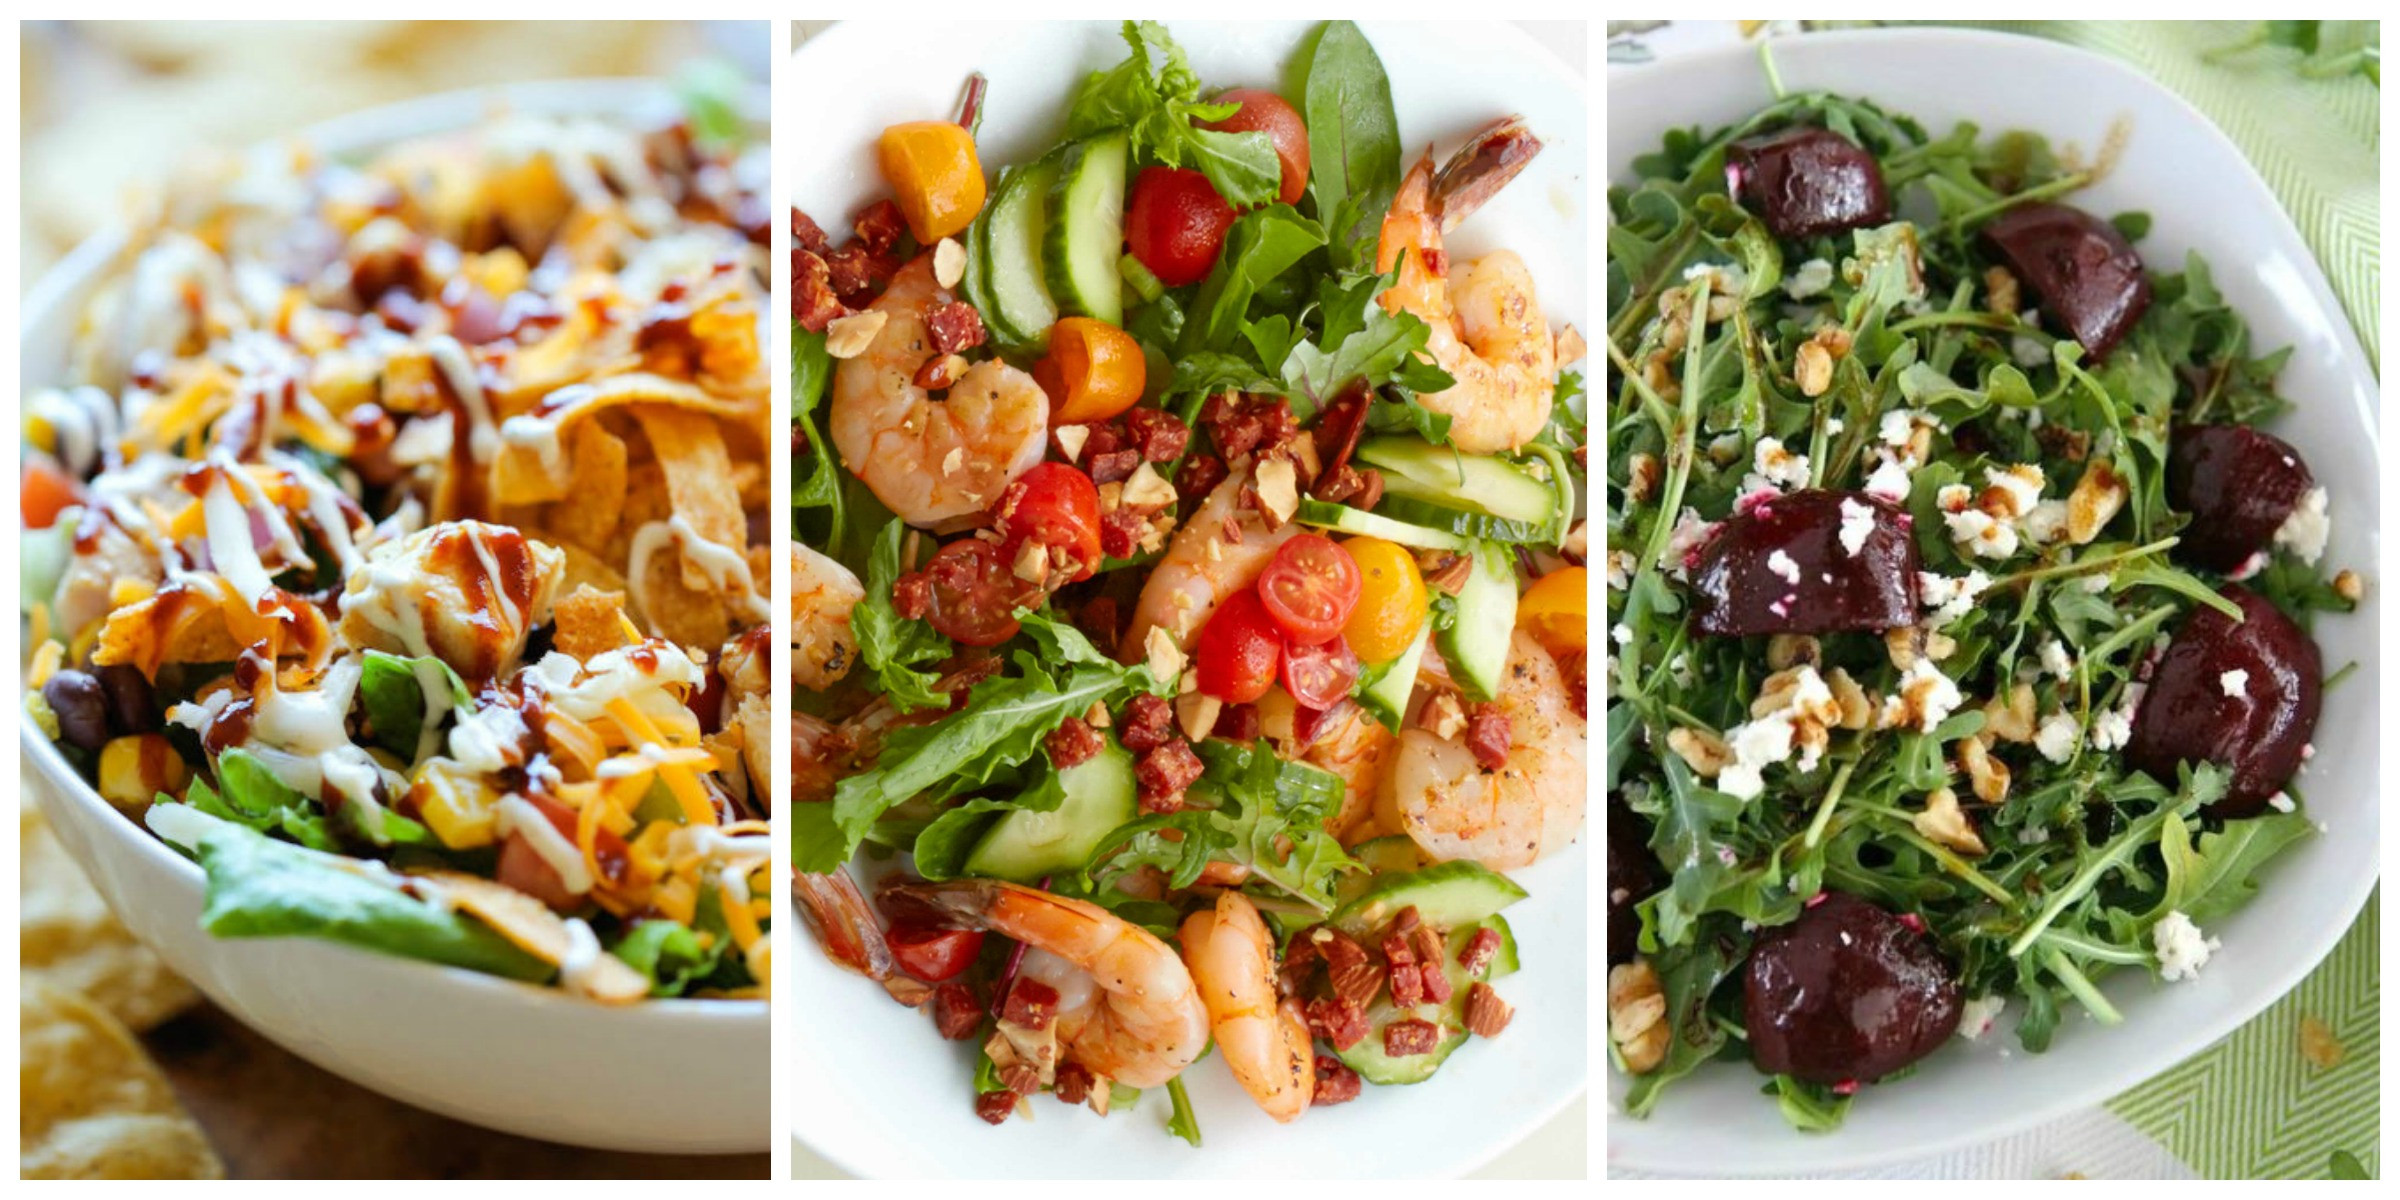 Hearty Dinner Ideas  22 Best Salads for Dinner Easy Recipes for Hearty Salads